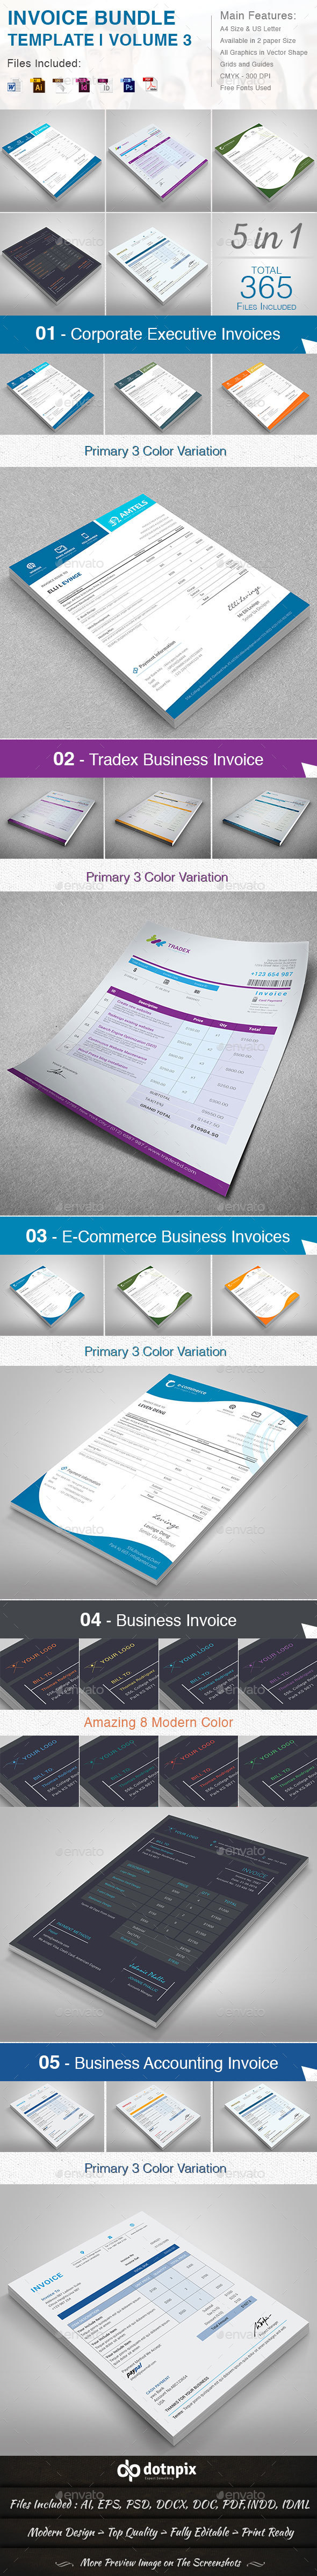 Invoice Bundle Template | Volume 3 - Proposals & Invoices Stationery